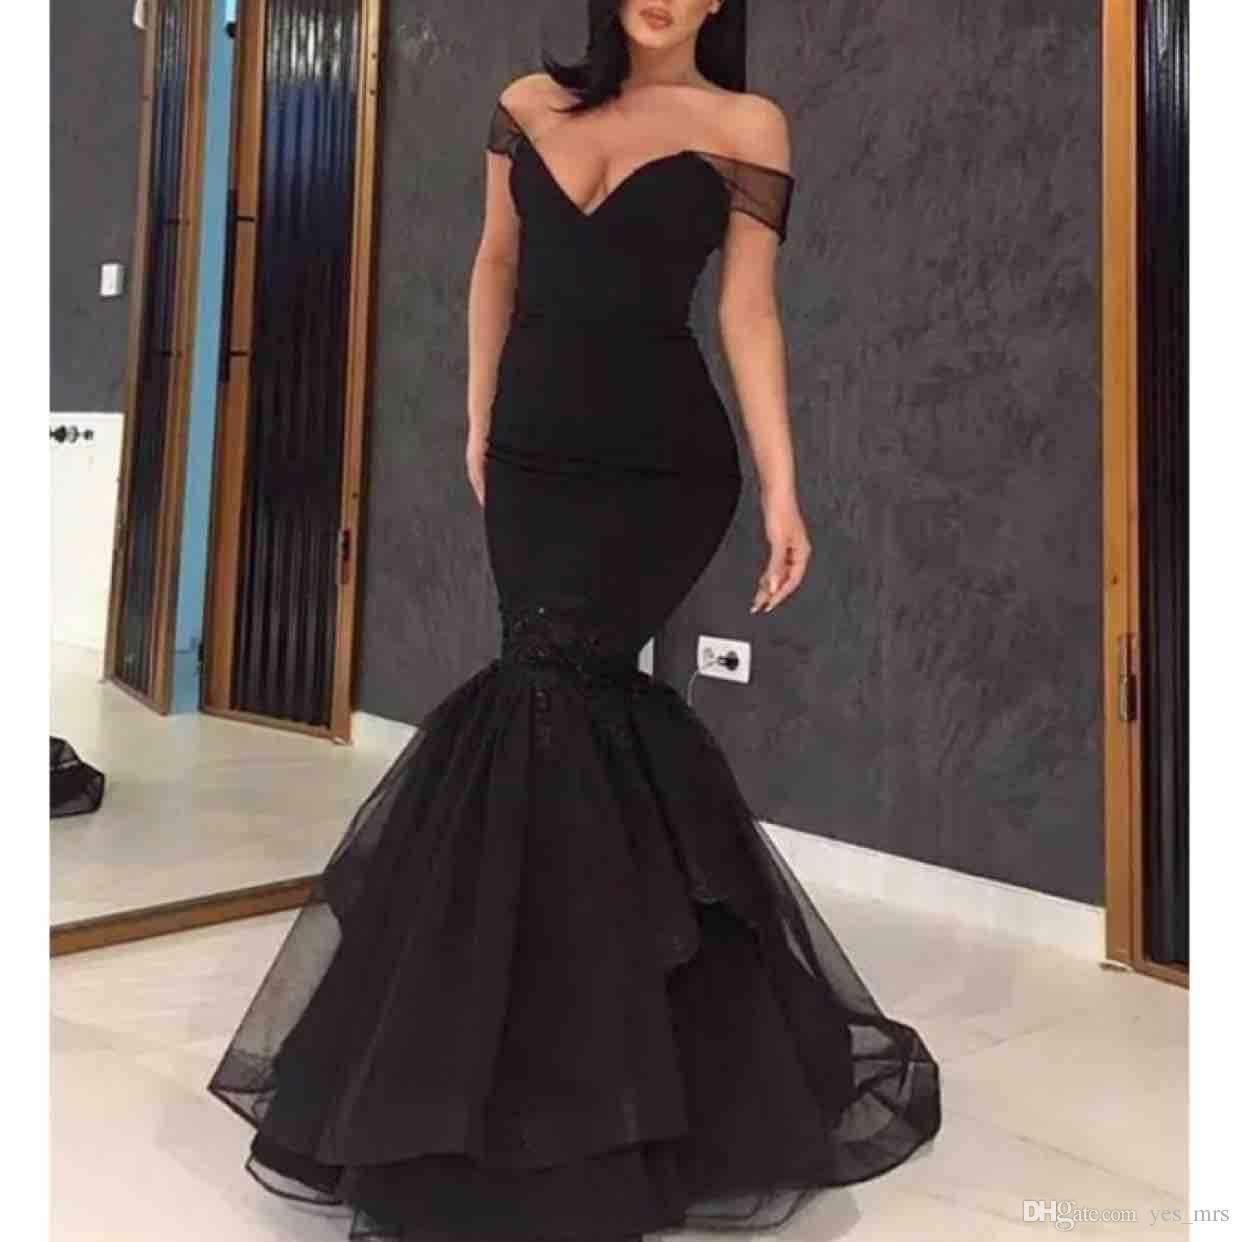 2019 New Sexy Black Mermaid Prom Dresses Off Shoulder Satin Tulle Open Back Floor Length Plus Size Evening Dress Party Pageant Formal Gown